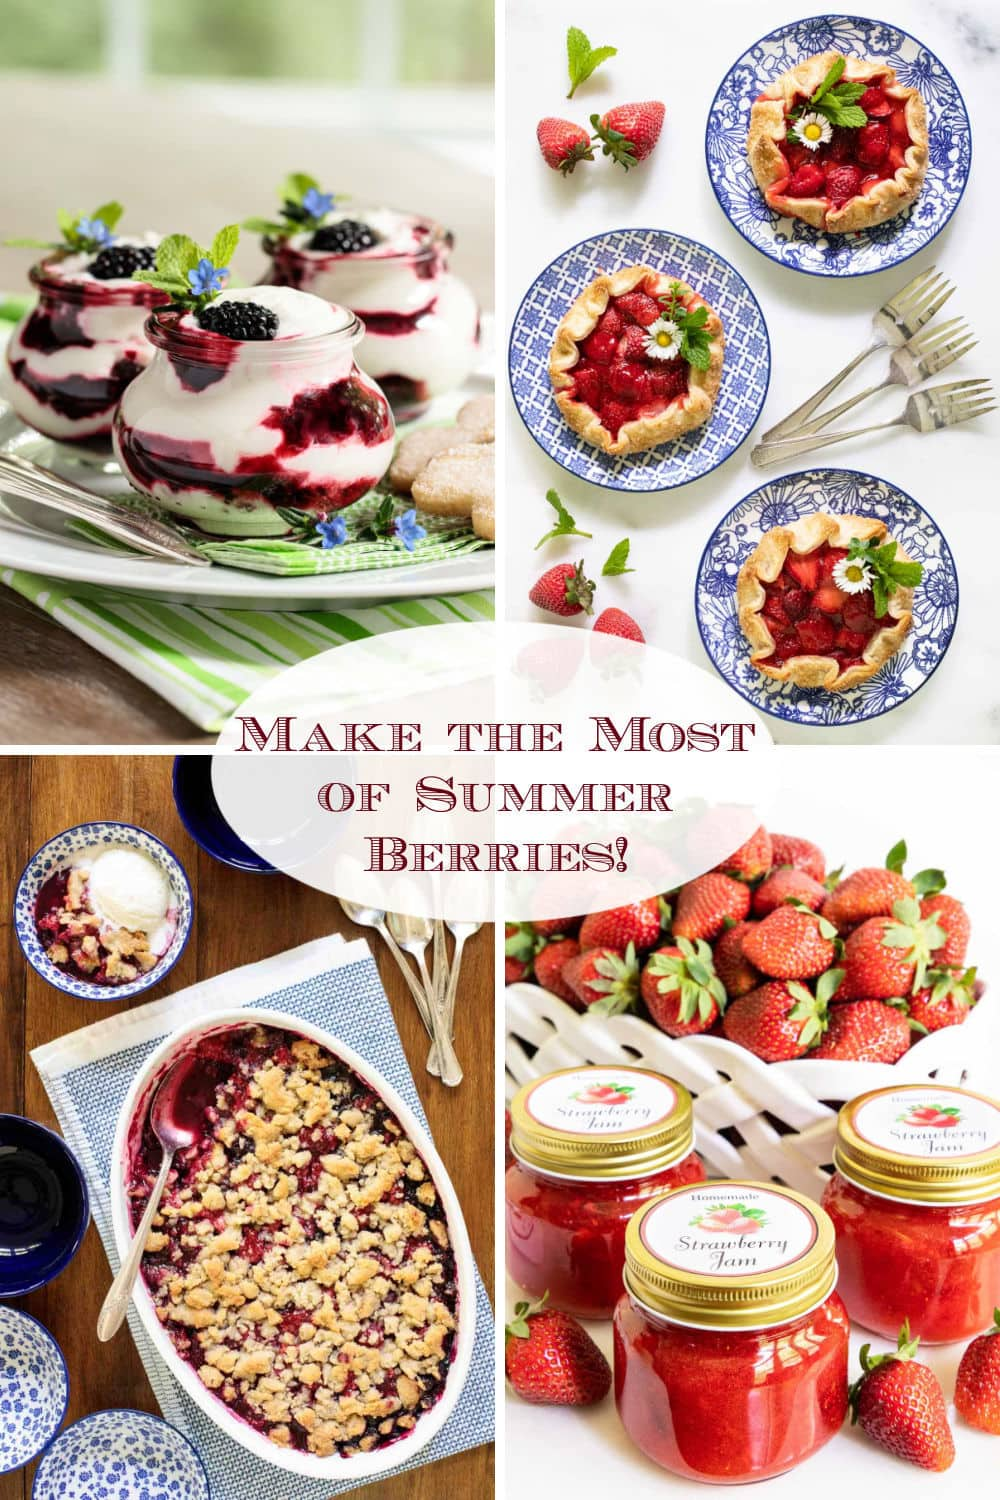 Make the Most of Those Fabulous Summer Berries!